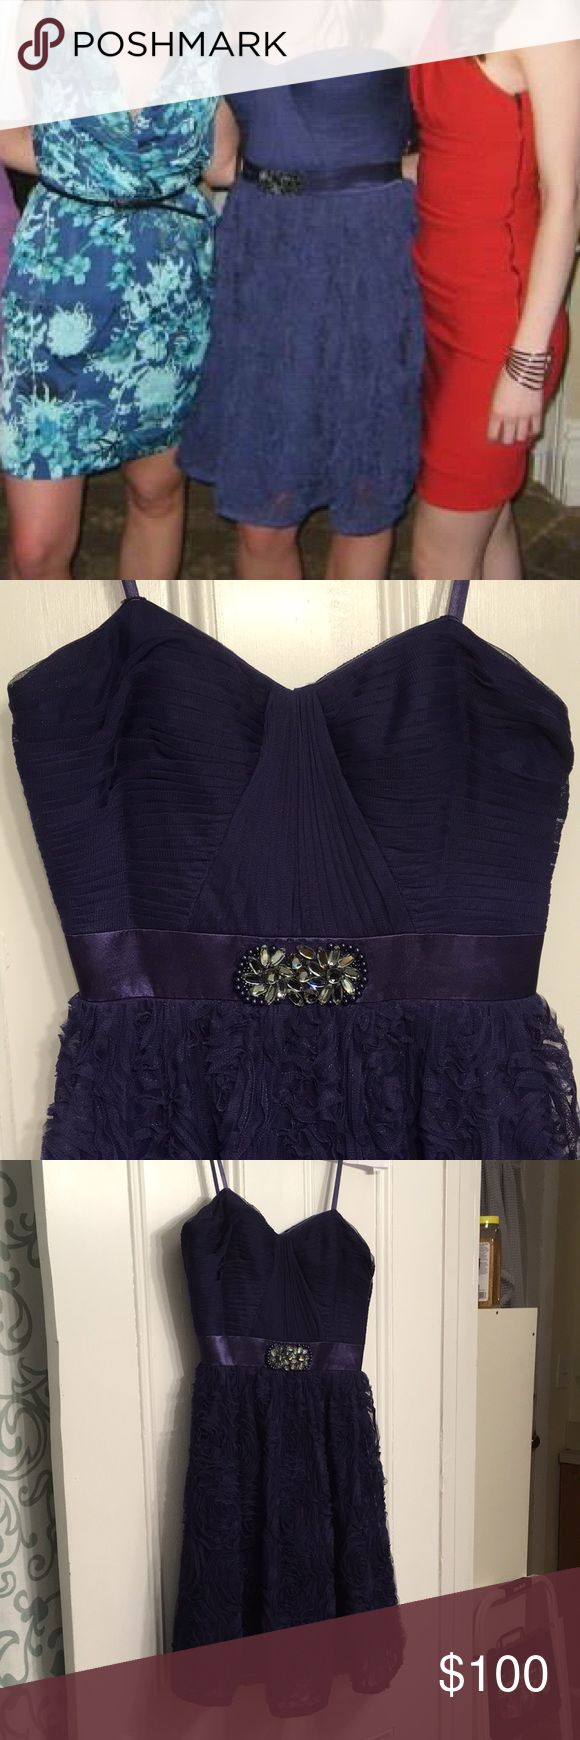 Gorgeous purple Adrianna Papell dress. Purple strapless A-line dress with a pretty embellishment that defines your waist.  The skirt is full and the top is structured and supportive.  Great for a wedding, gala or formal event. Adrianna Papell Dresses Strapless